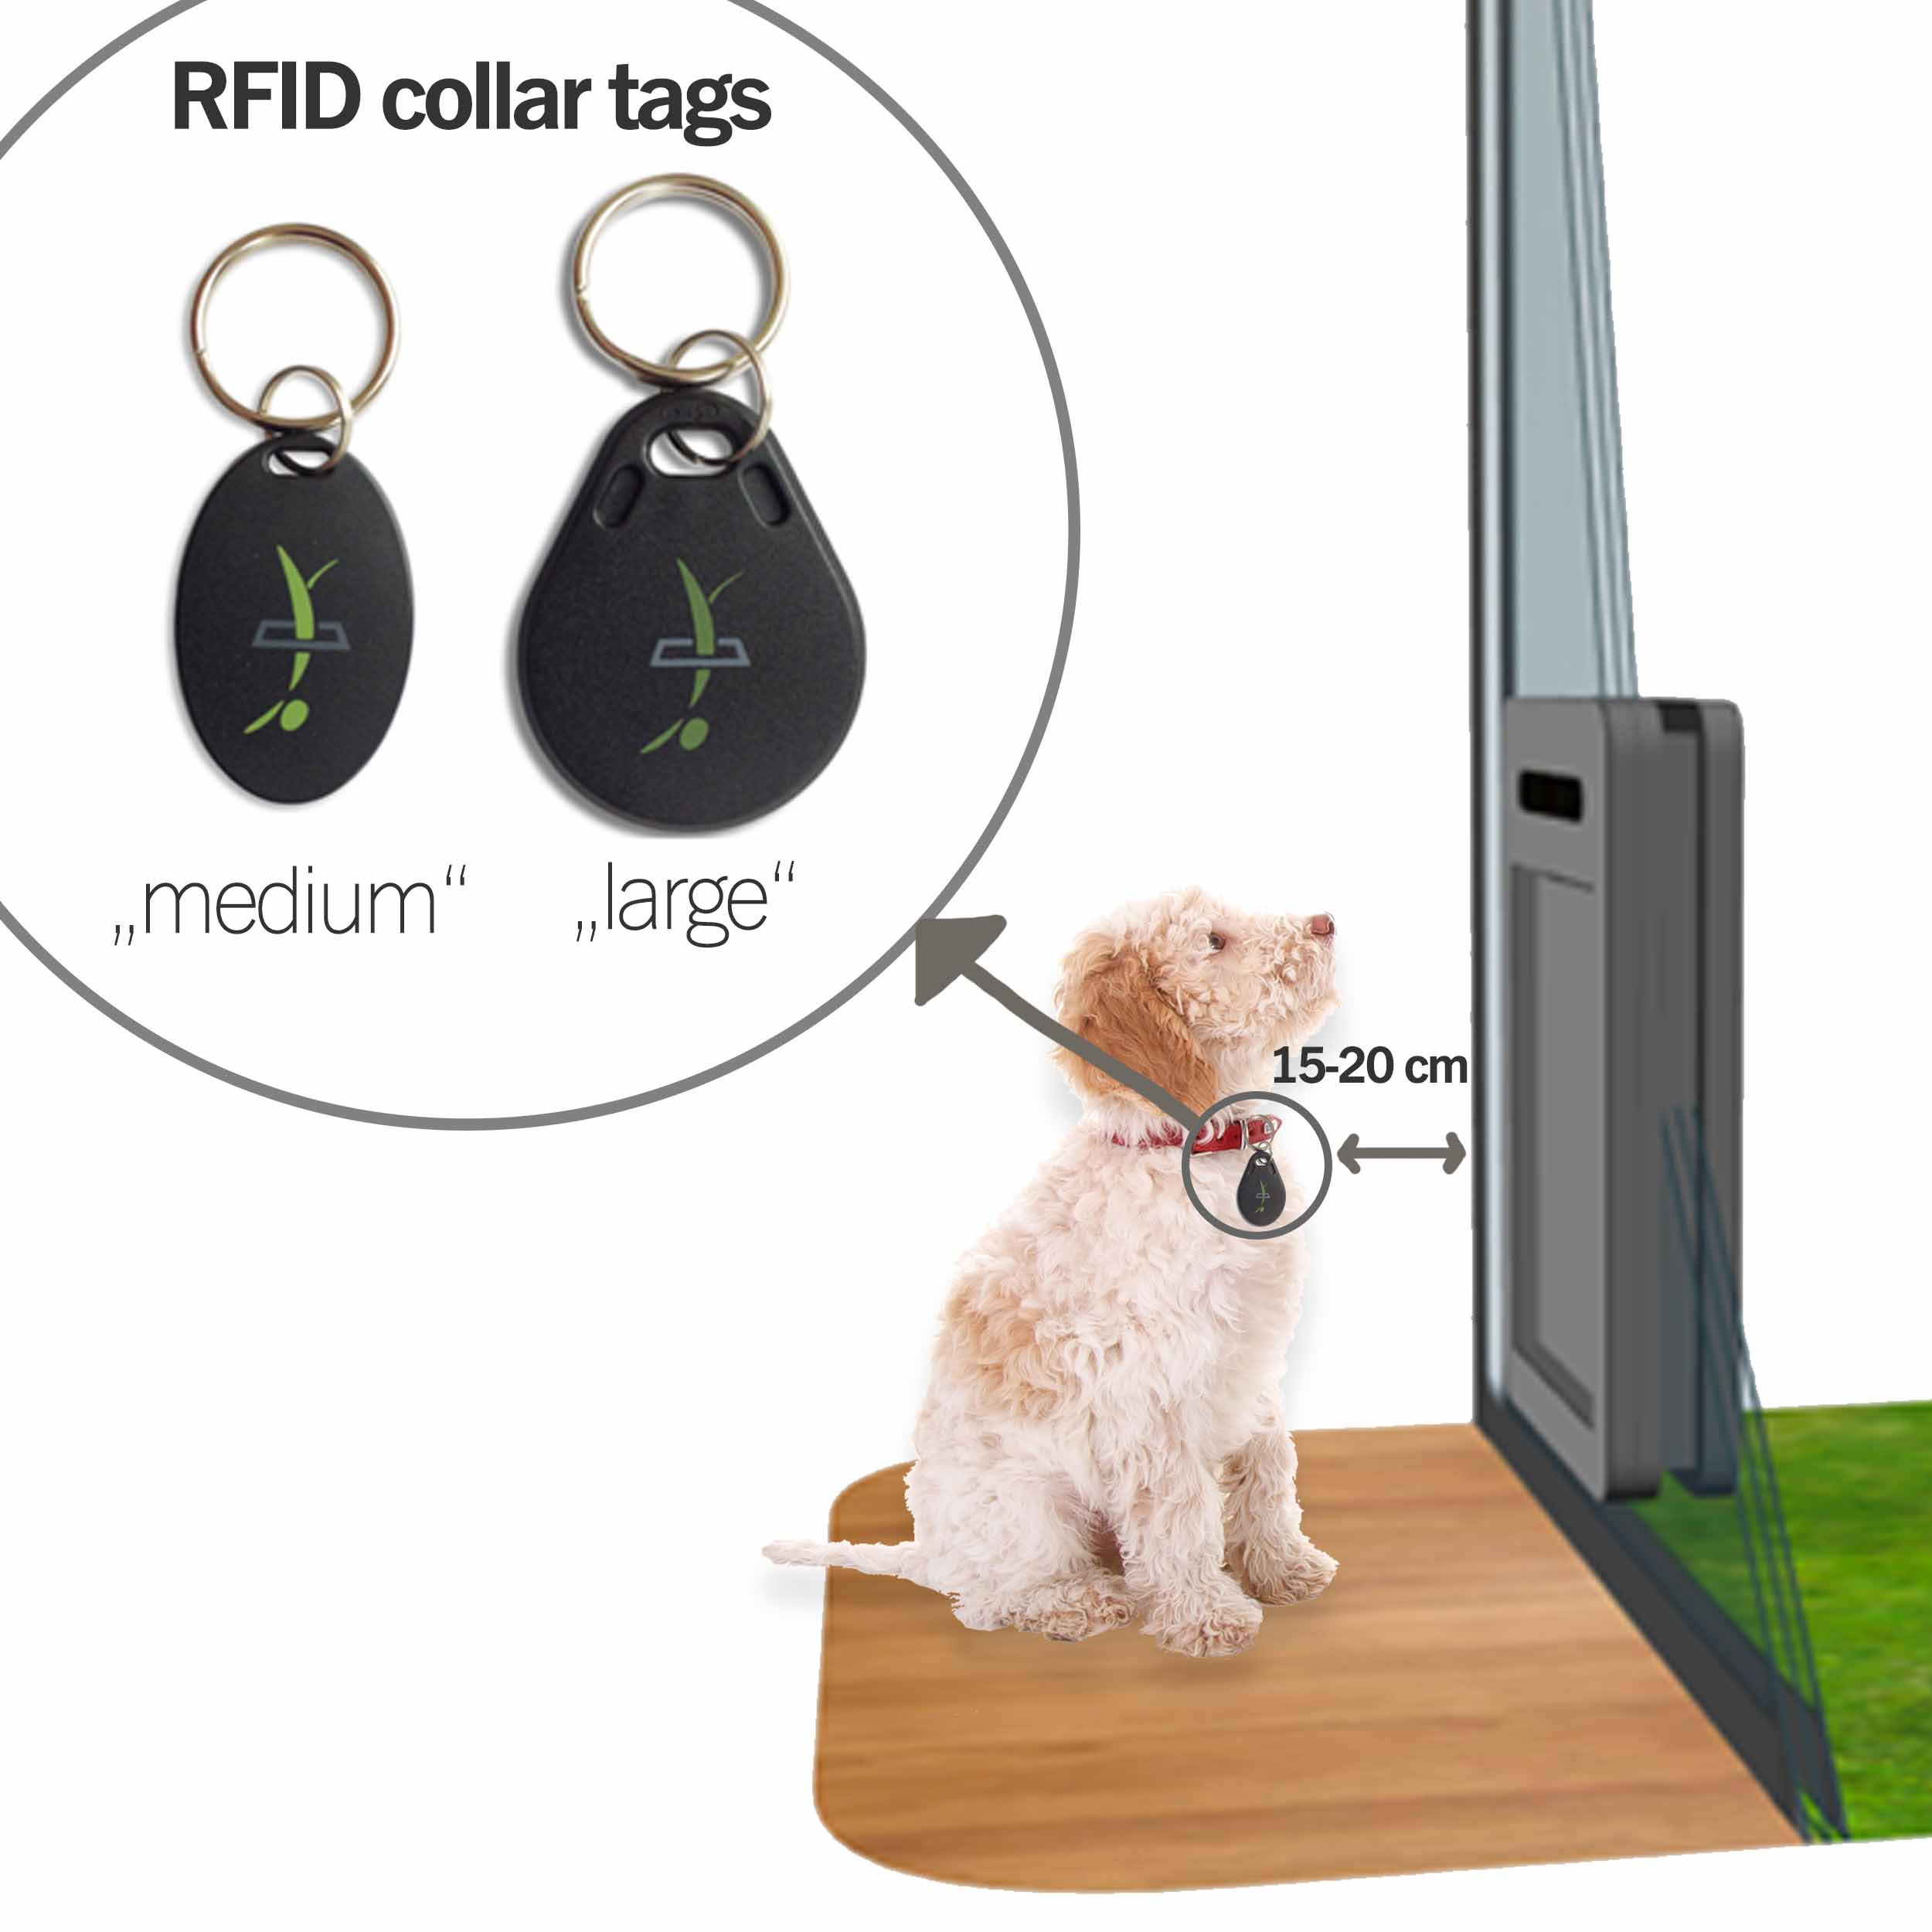 RFID chips – function and differences between collar tags and implanted microchips